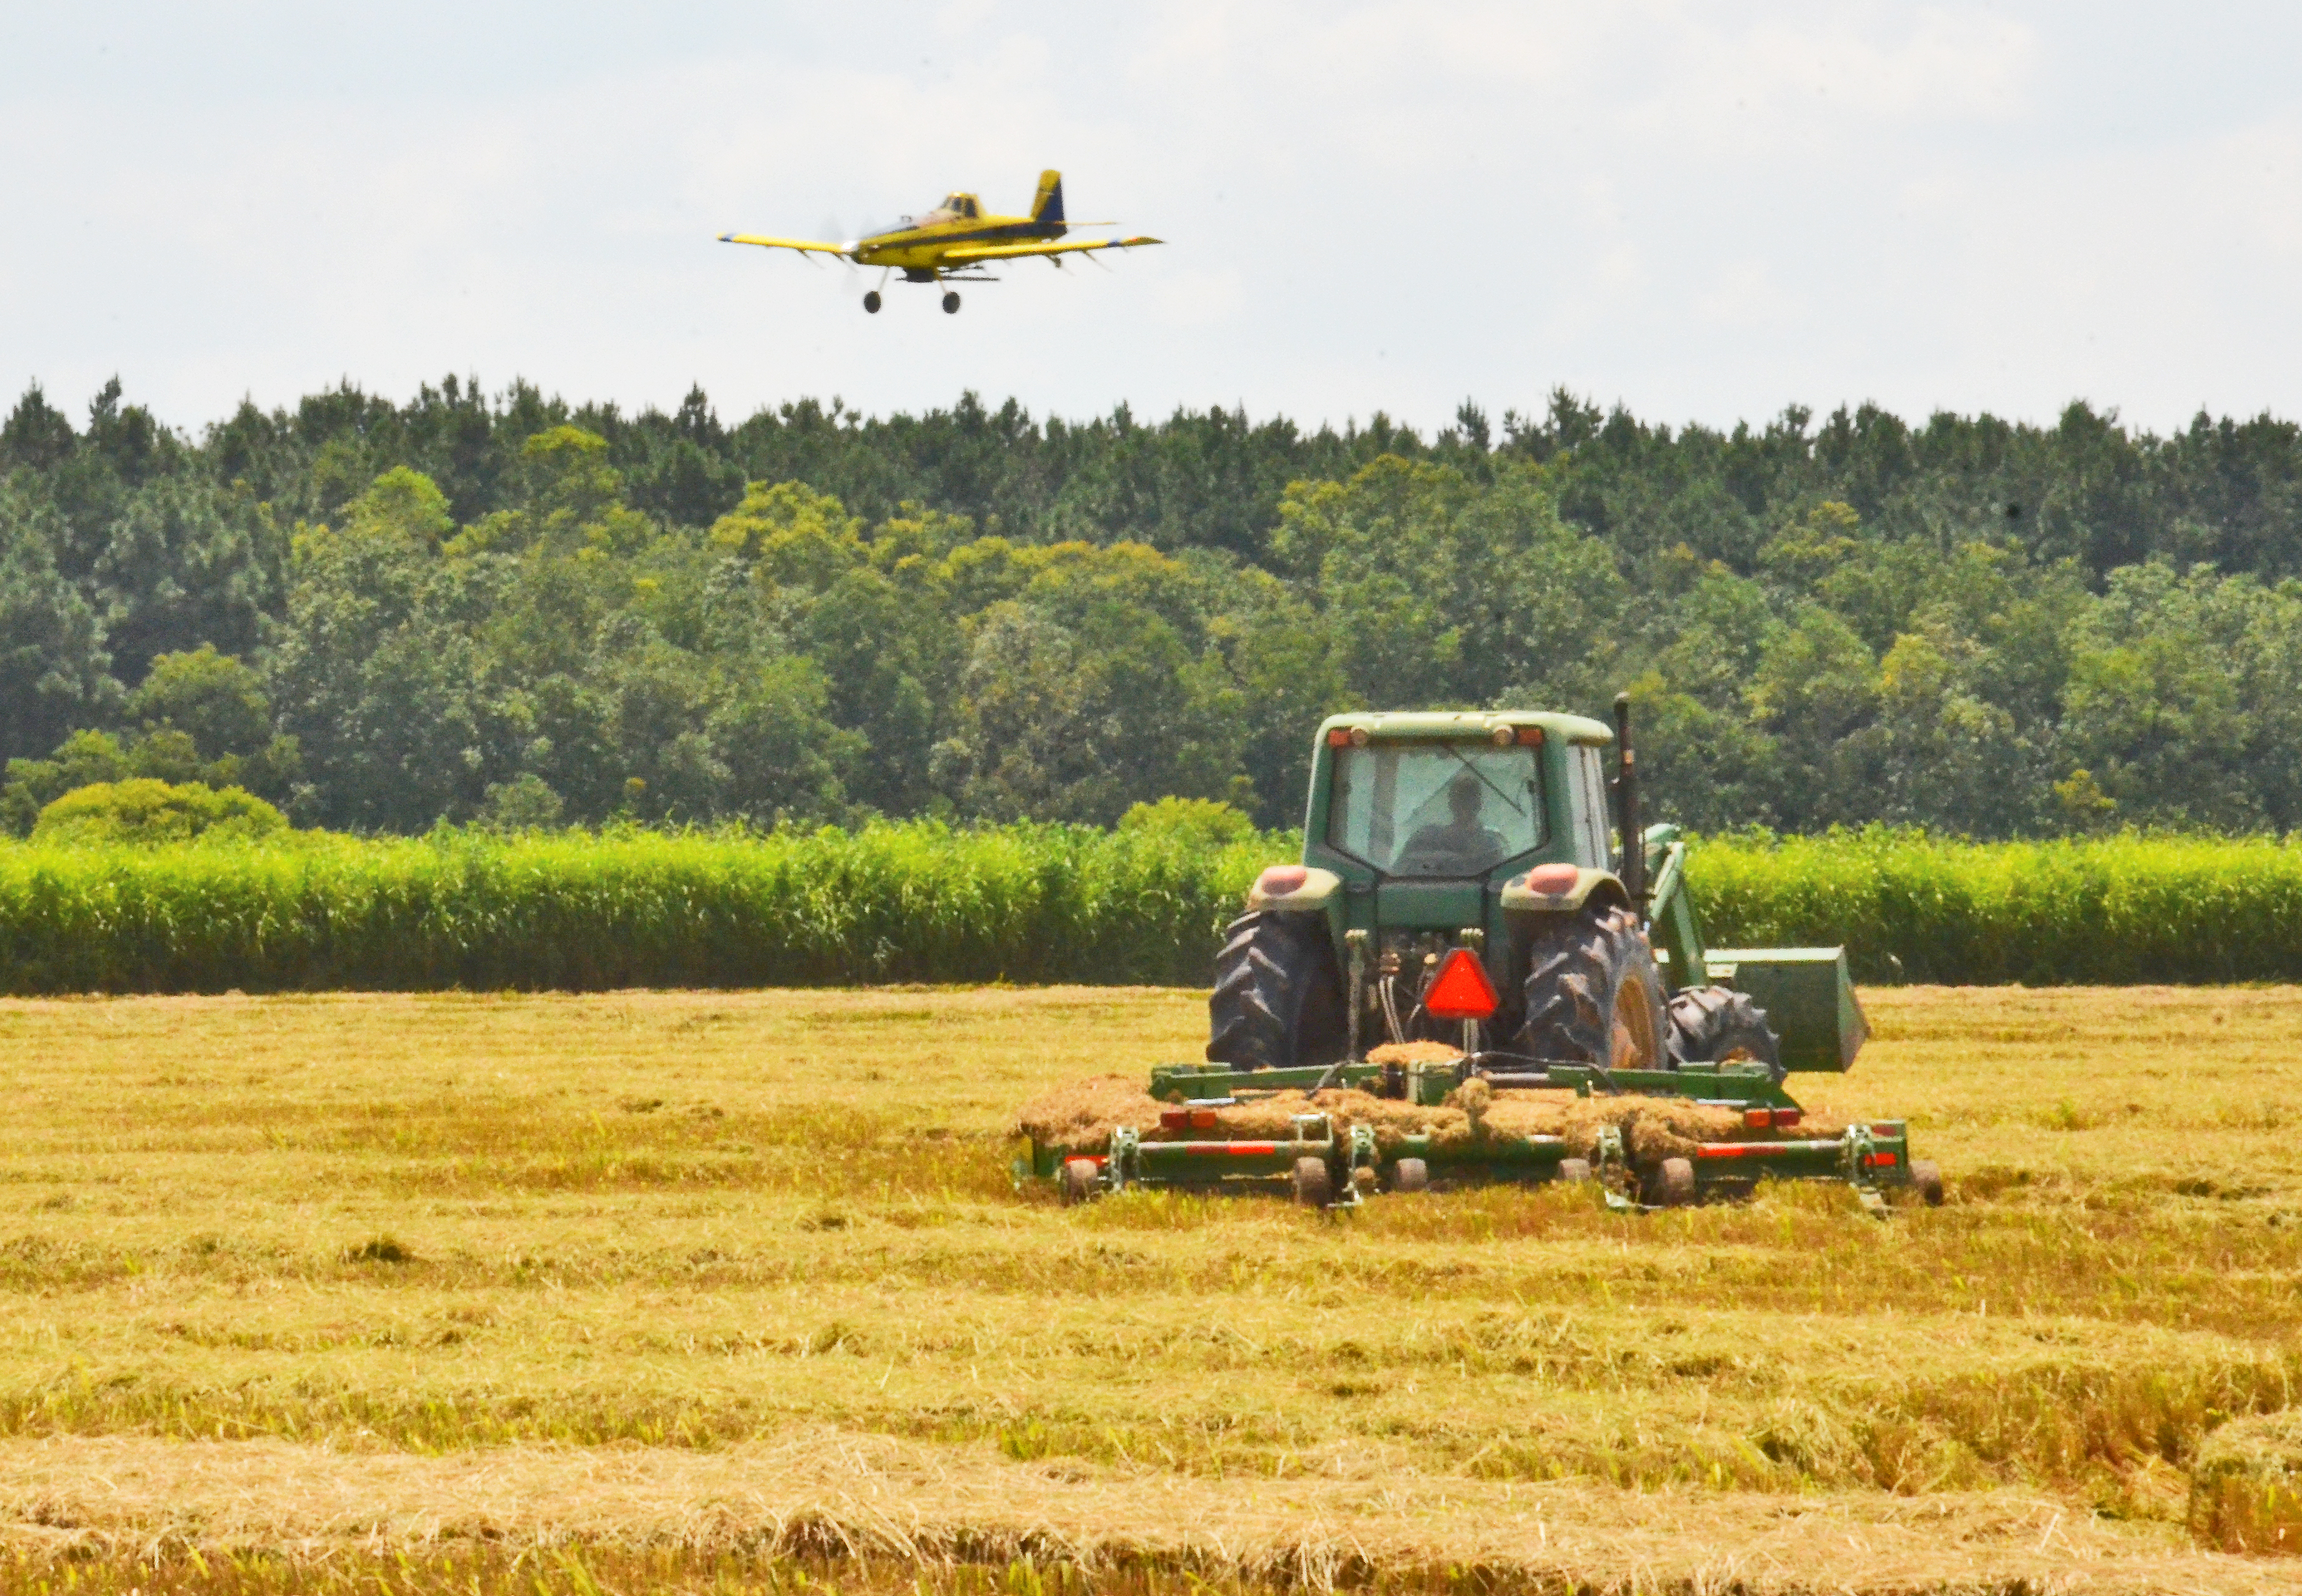 airplane flying fertilizer and tractor mowing stubble.jpg thumbnail